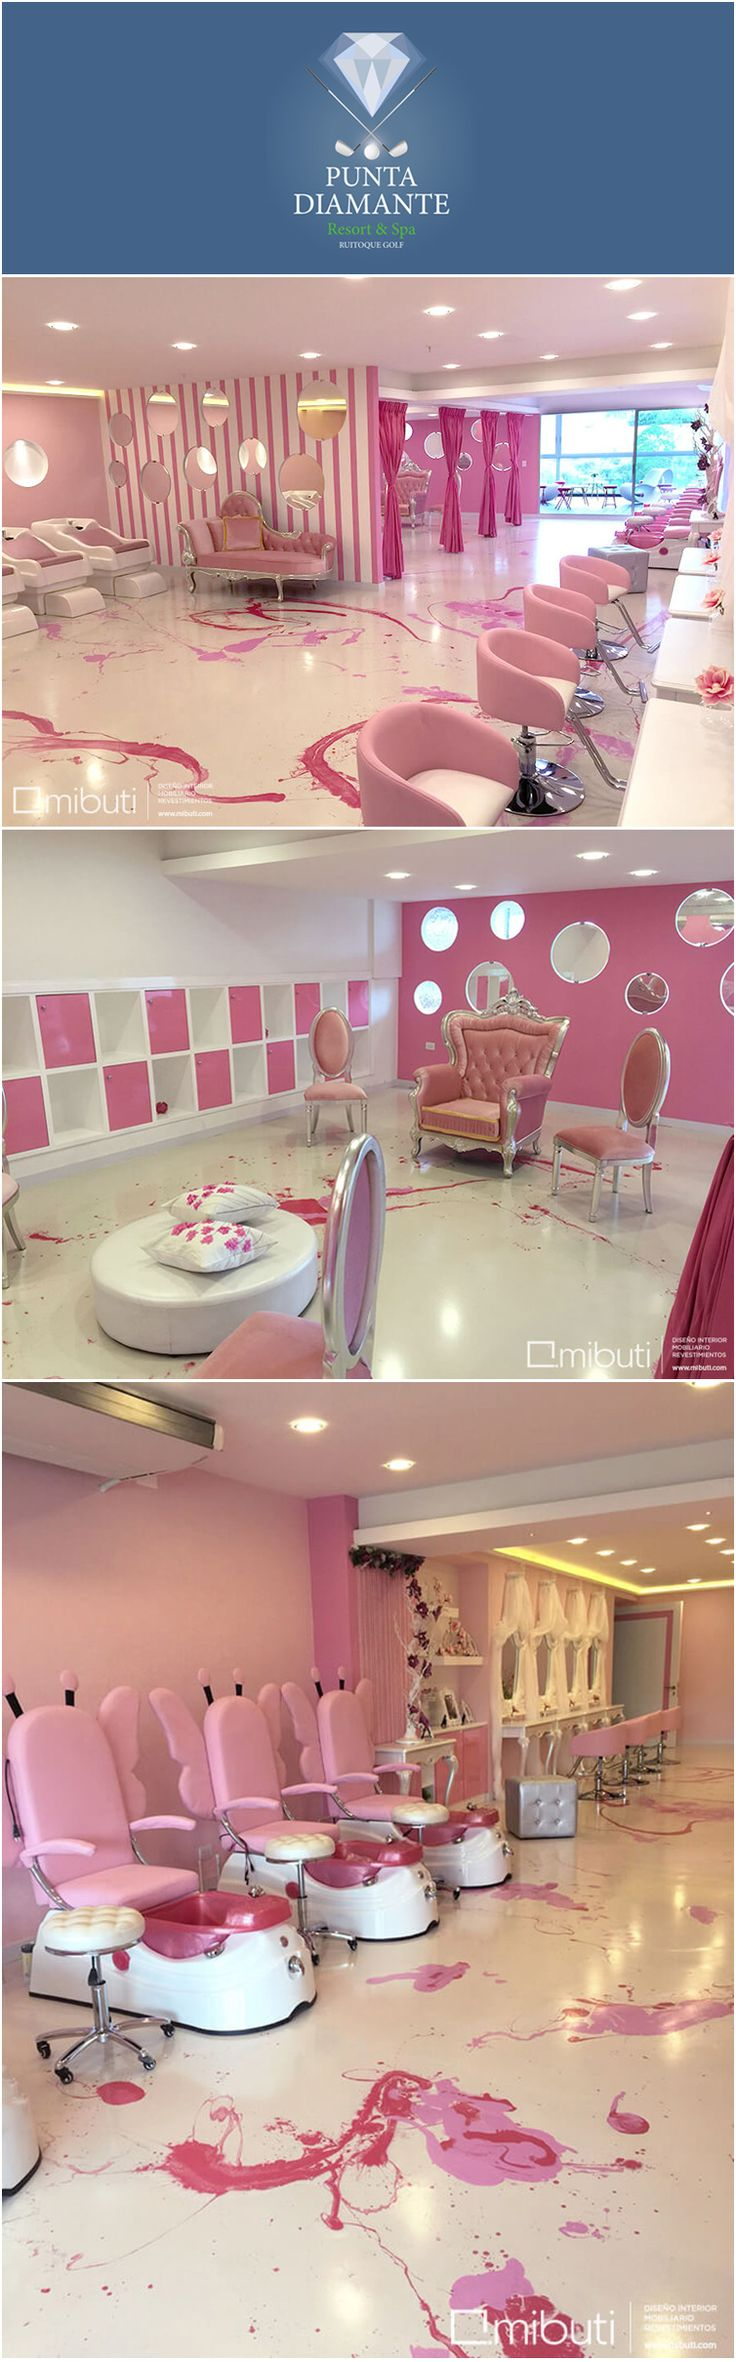 ‪‬‬‪‬‬‪‬‬‪‬‬‪‬‬‪‬‬‪‬‬‪‬‬‪‬‬‪‬‬‪Home nail salon decorating inspiration ideas | nail technician room ideas | nail room ideas